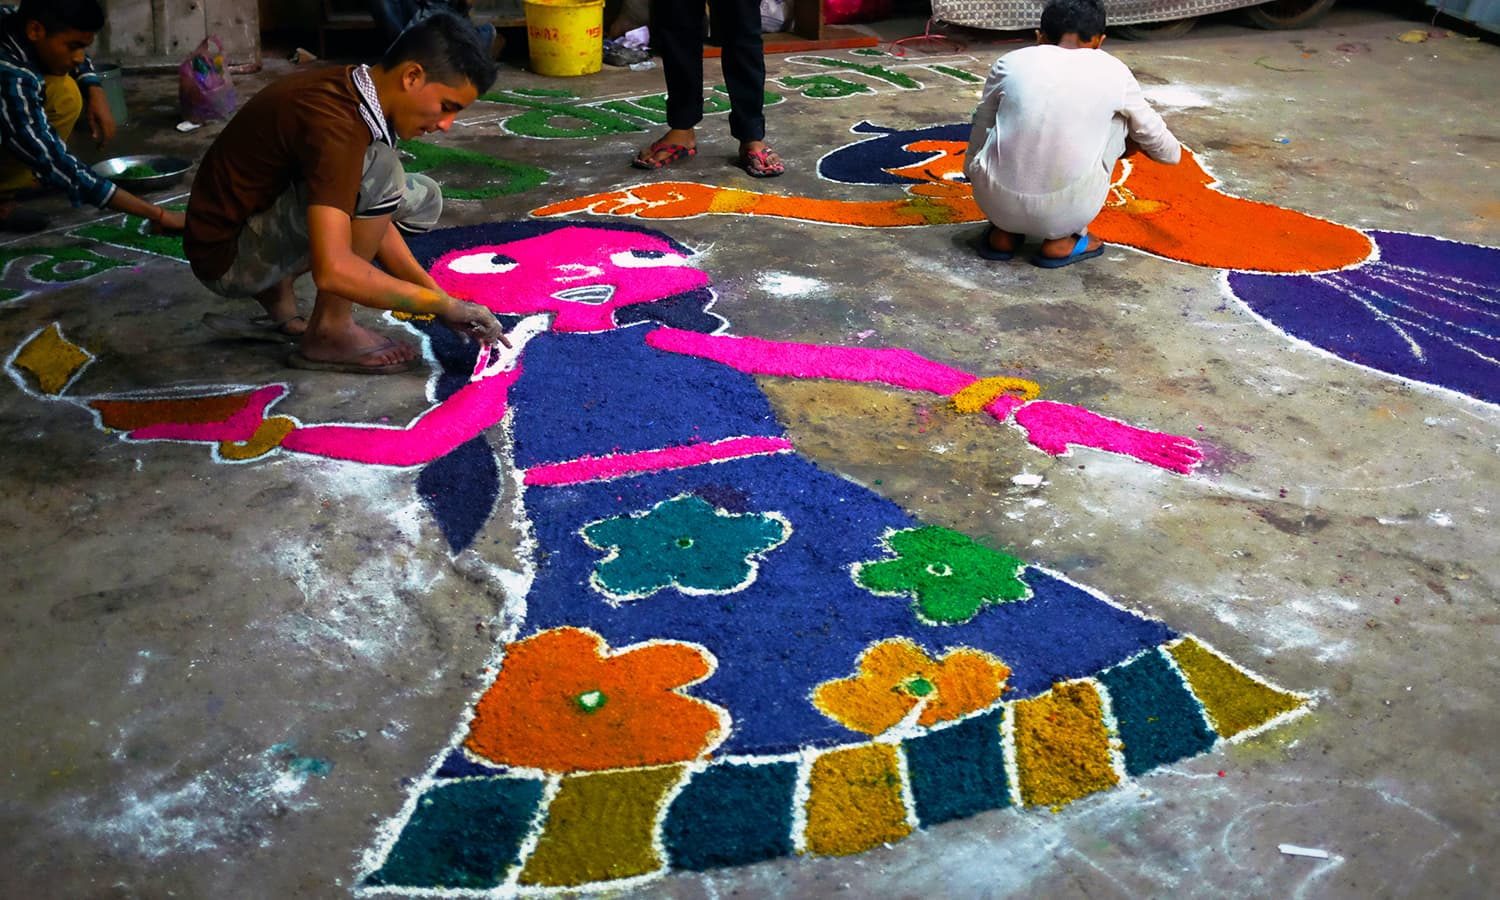 A young man busy creating a colourful design in one of the streets behind Shri Swaminarayan.